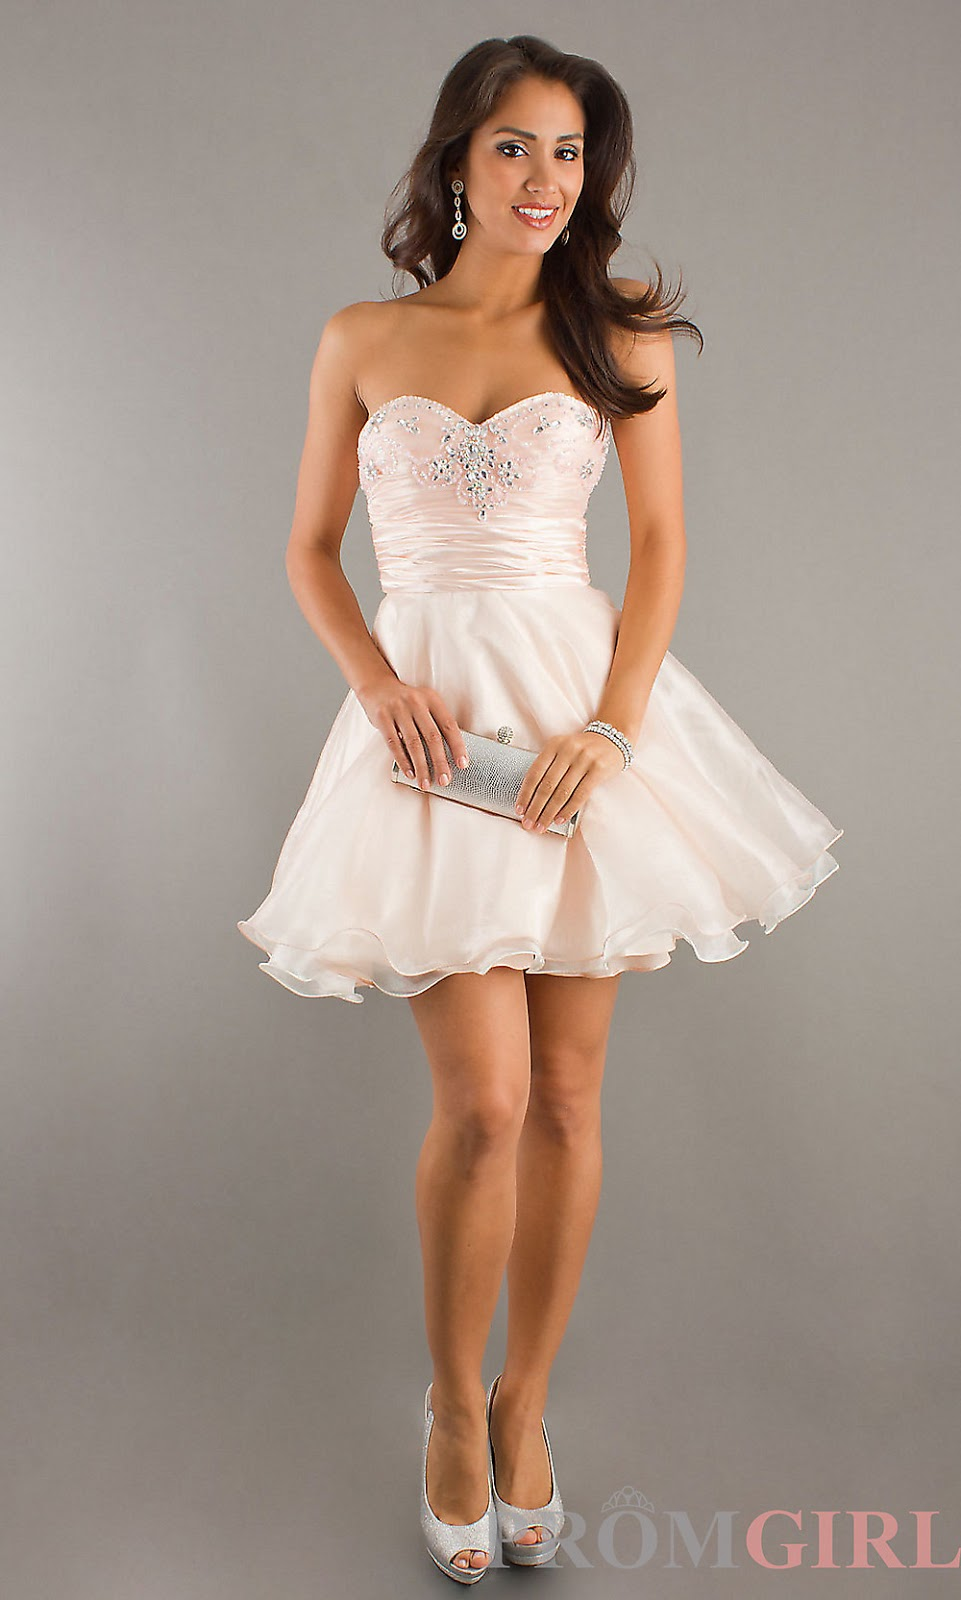 White Short Formal Dresses 2014 - Gallery Fusion